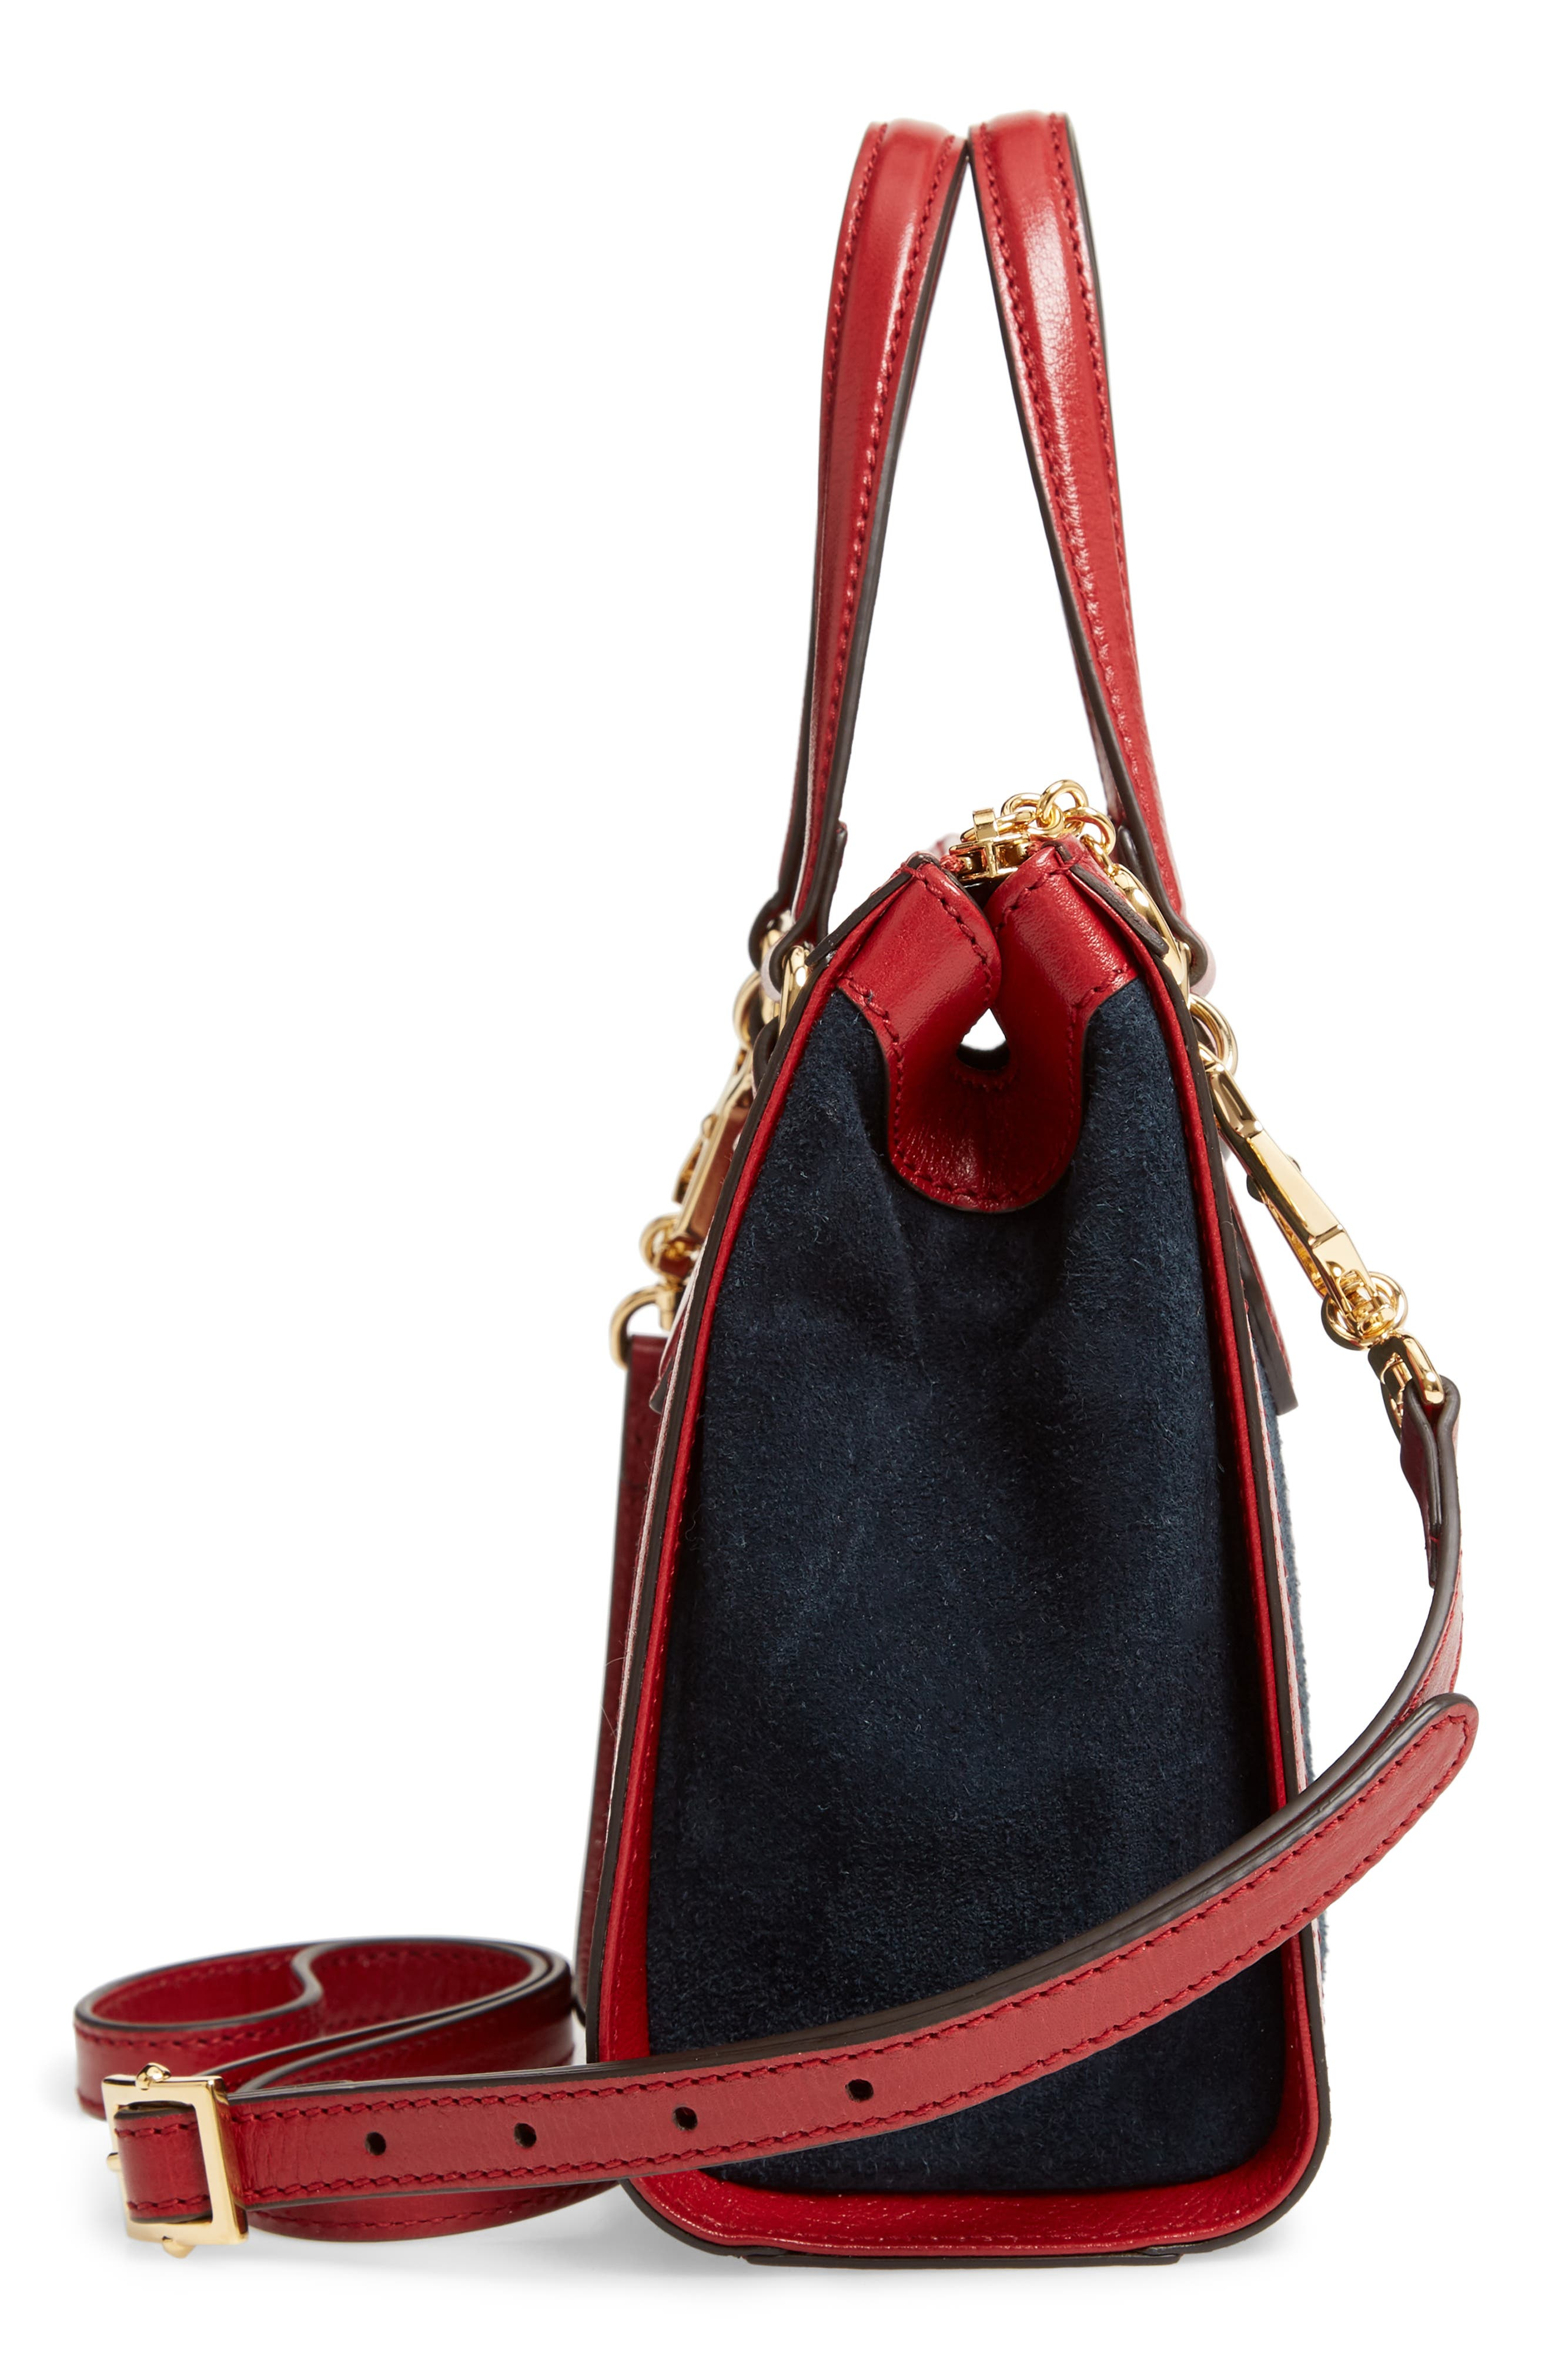 Ophidia Small Suede & Leather Convertible Tote Bag,                             Alternate thumbnail 5, color,                             NEW BLU/ ROMANTIC CERISE